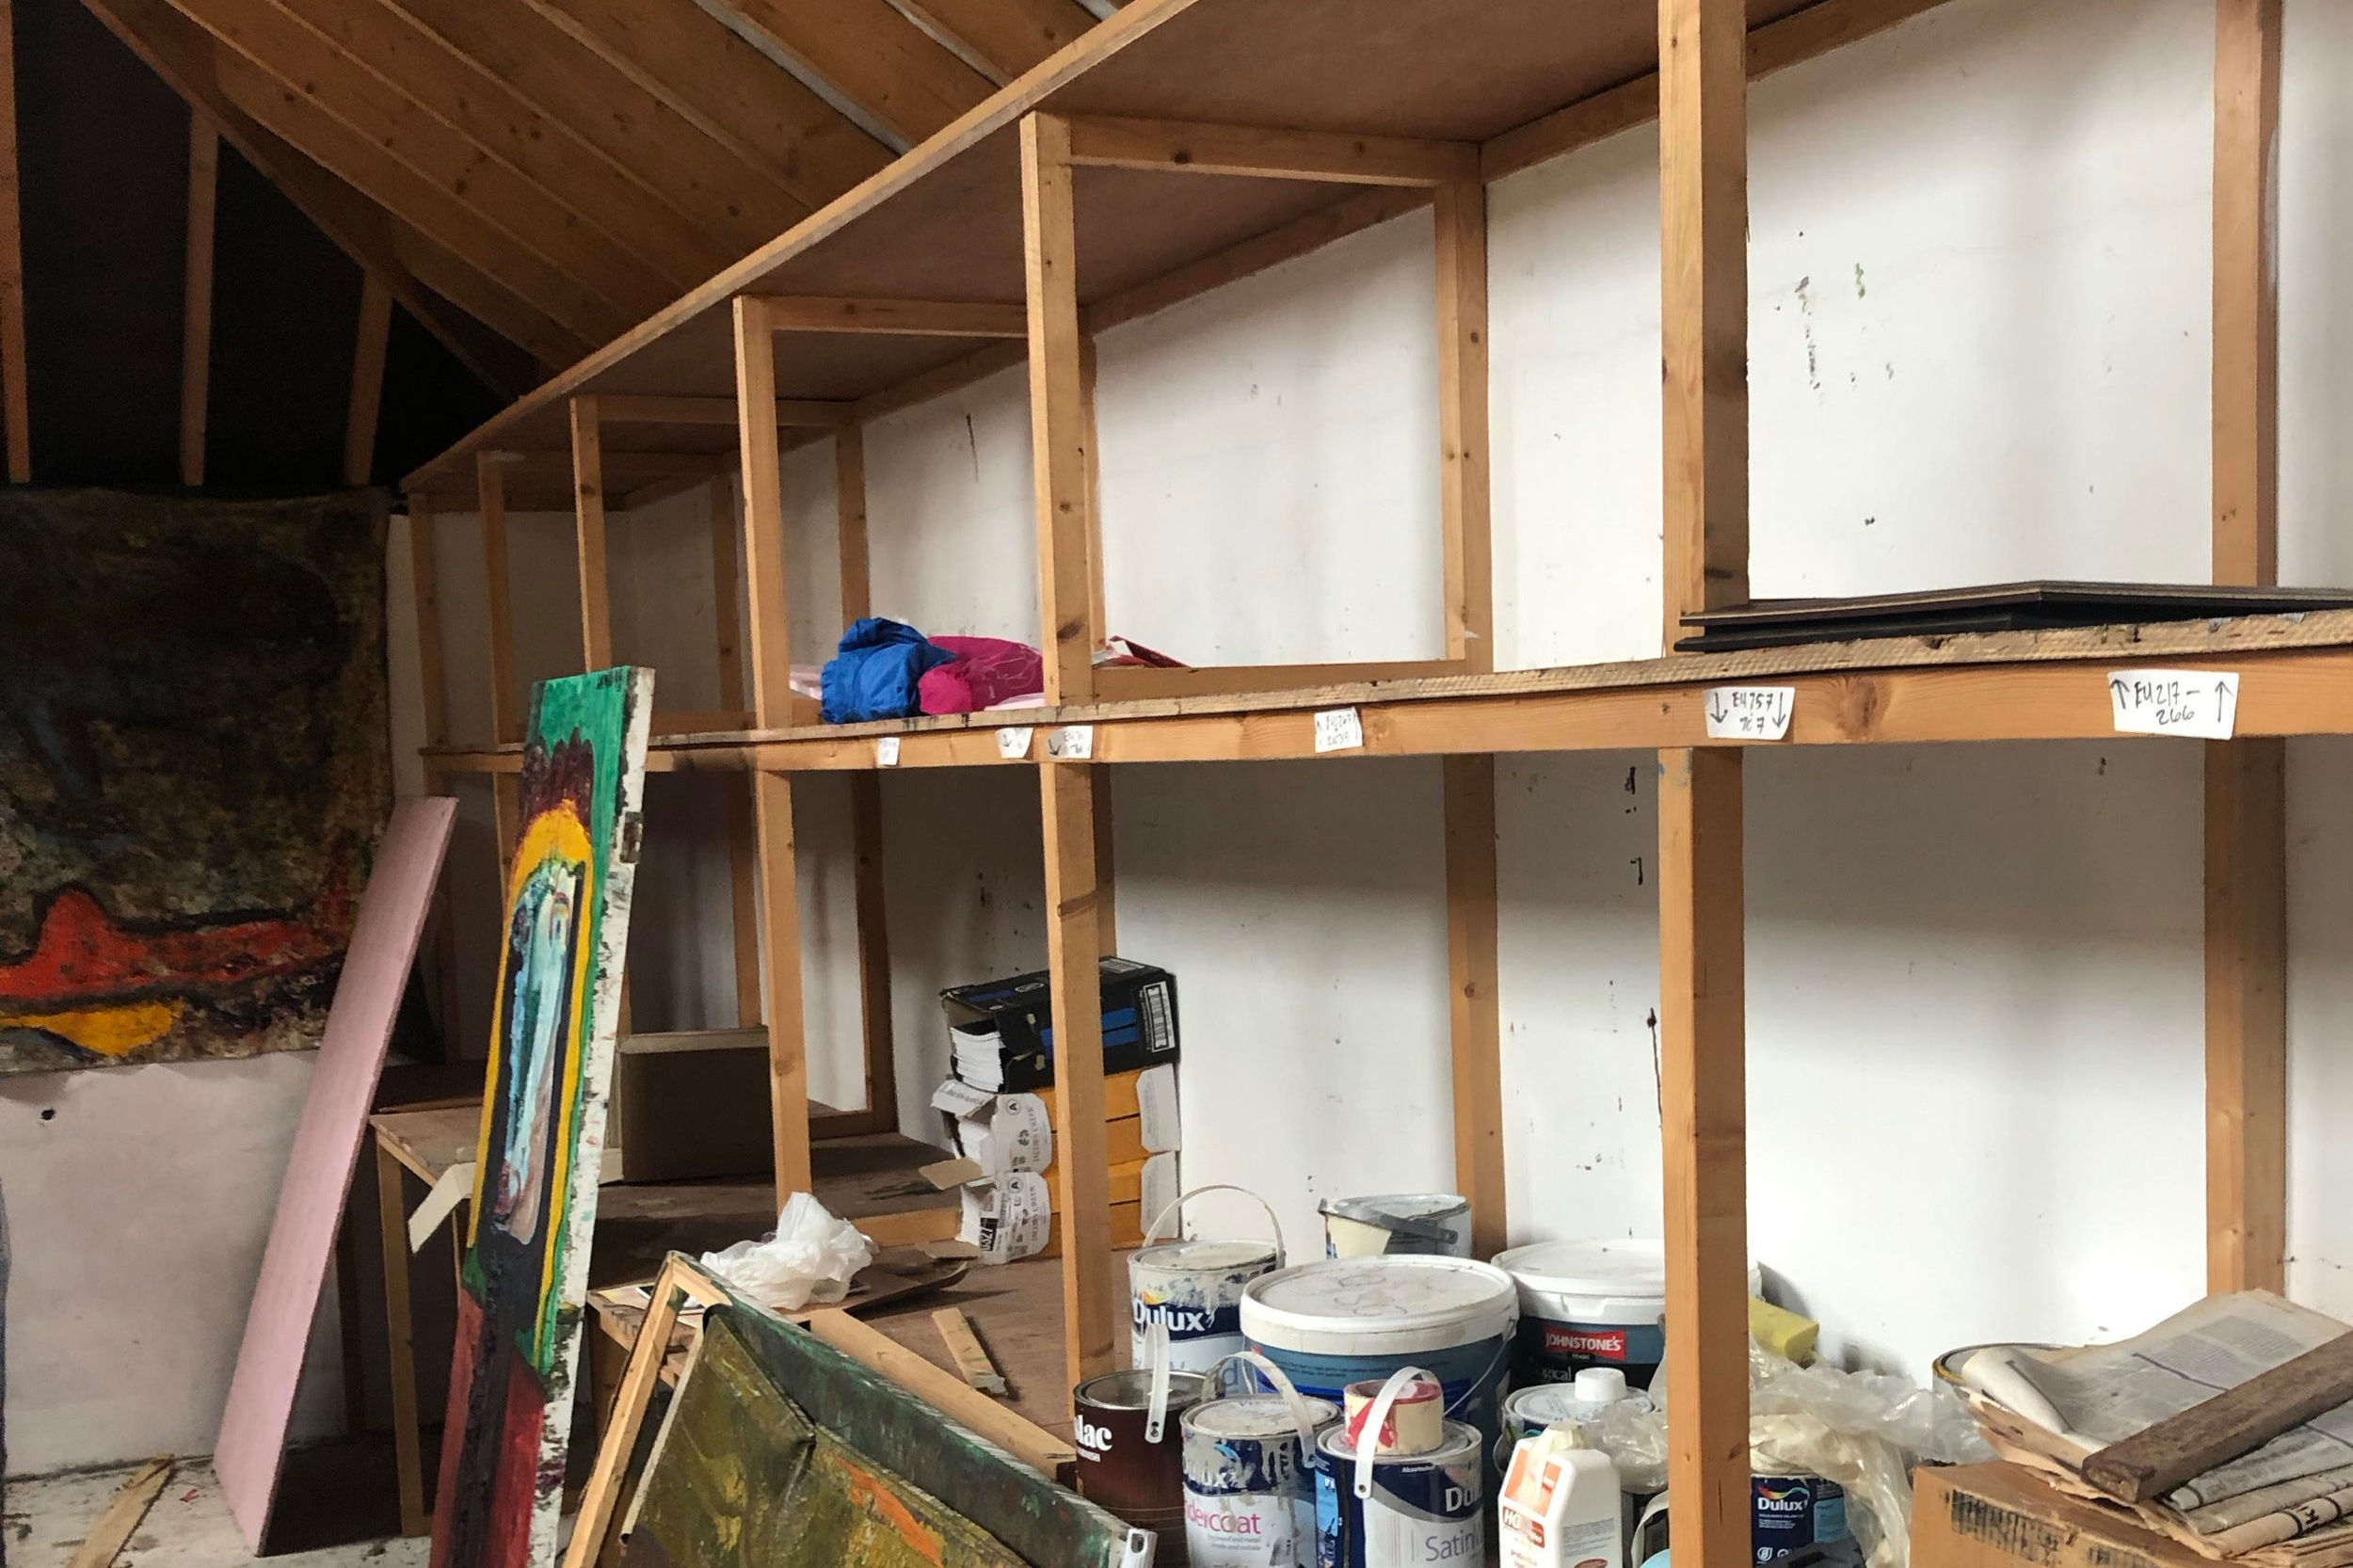 Storage Unit After Theft, Photo by Sheila Lamb-Gabler